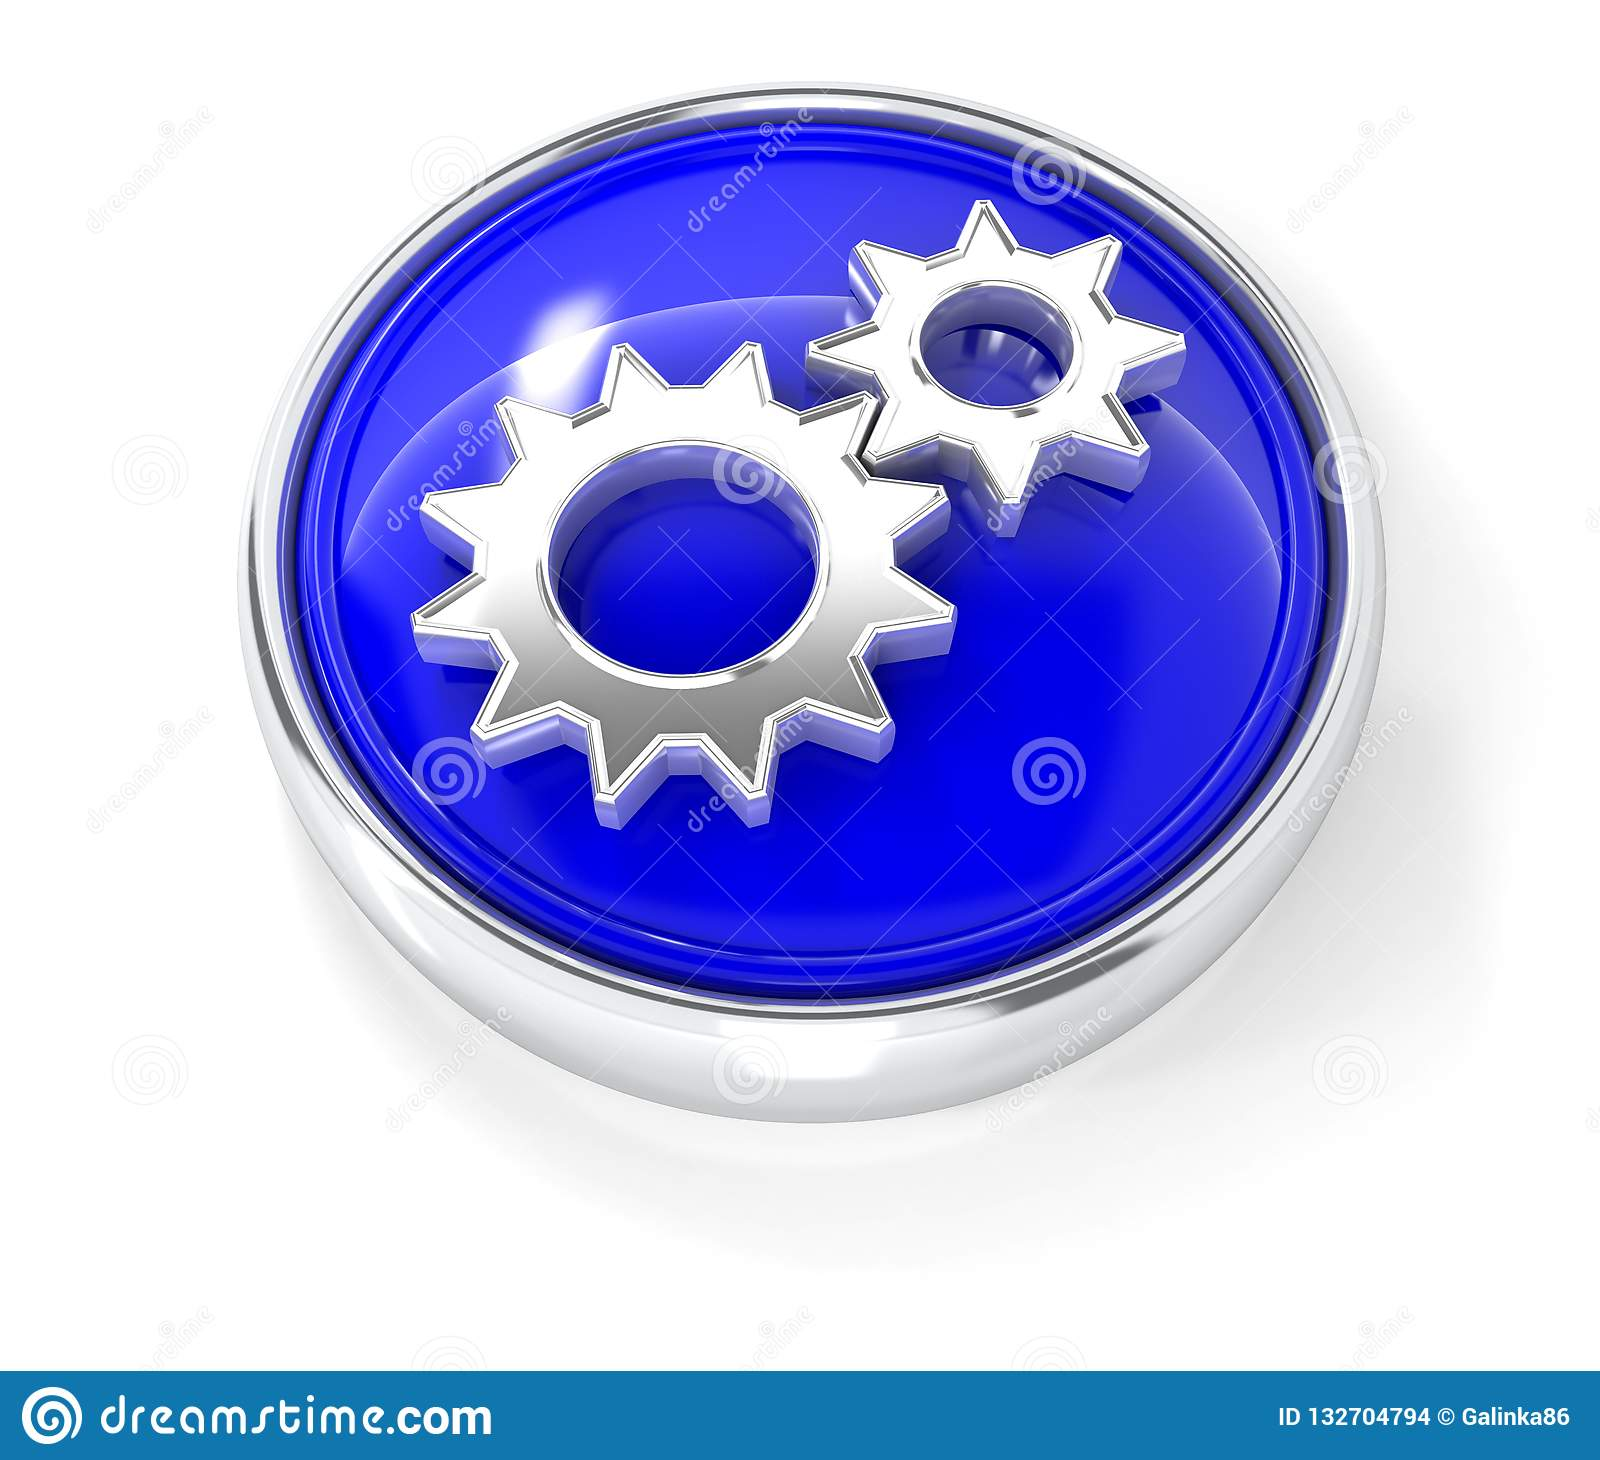 Gears icon on glossy blue round button